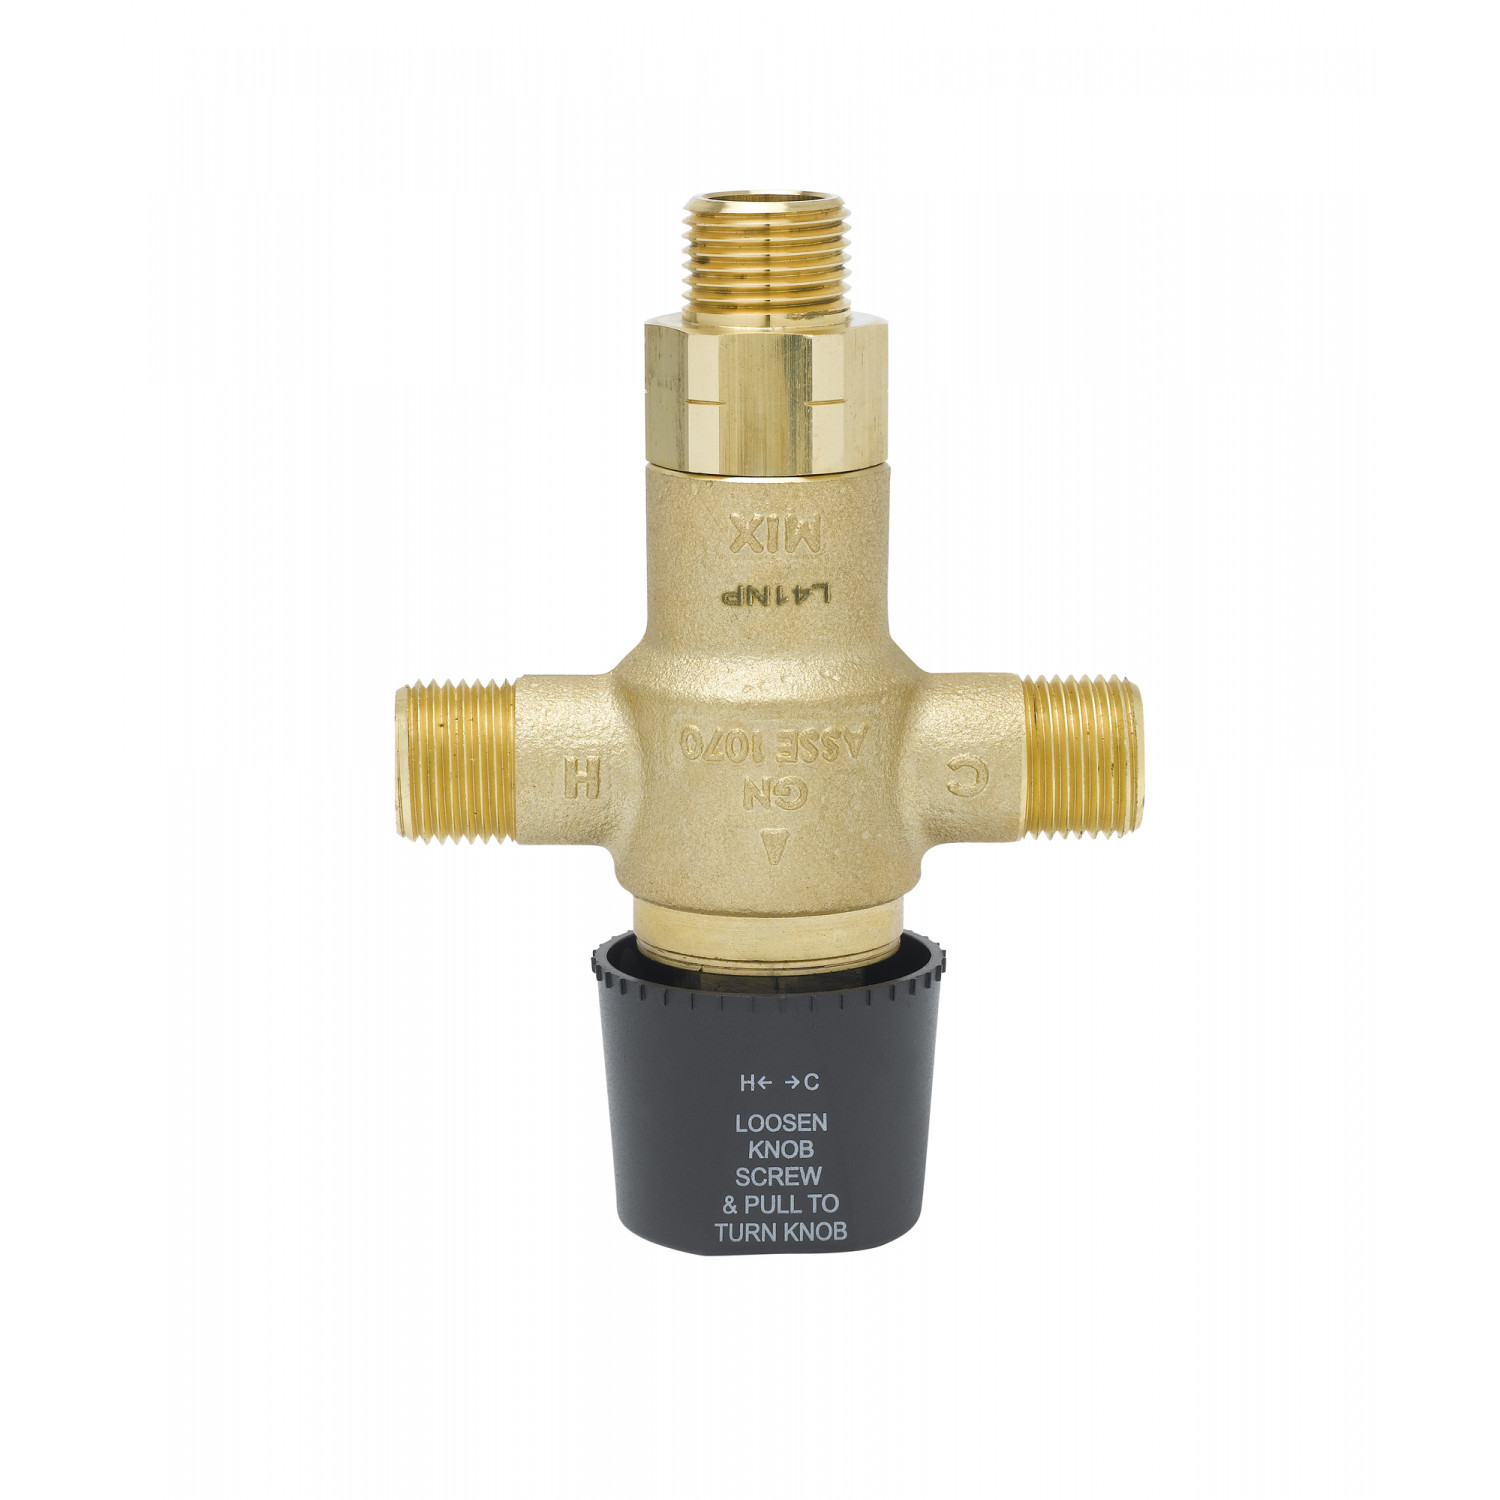 T S Ec Tmv Thermostatic Mixing Valve For Chekpoint Faucets: Sensor Faucet Parts: EC-TMV